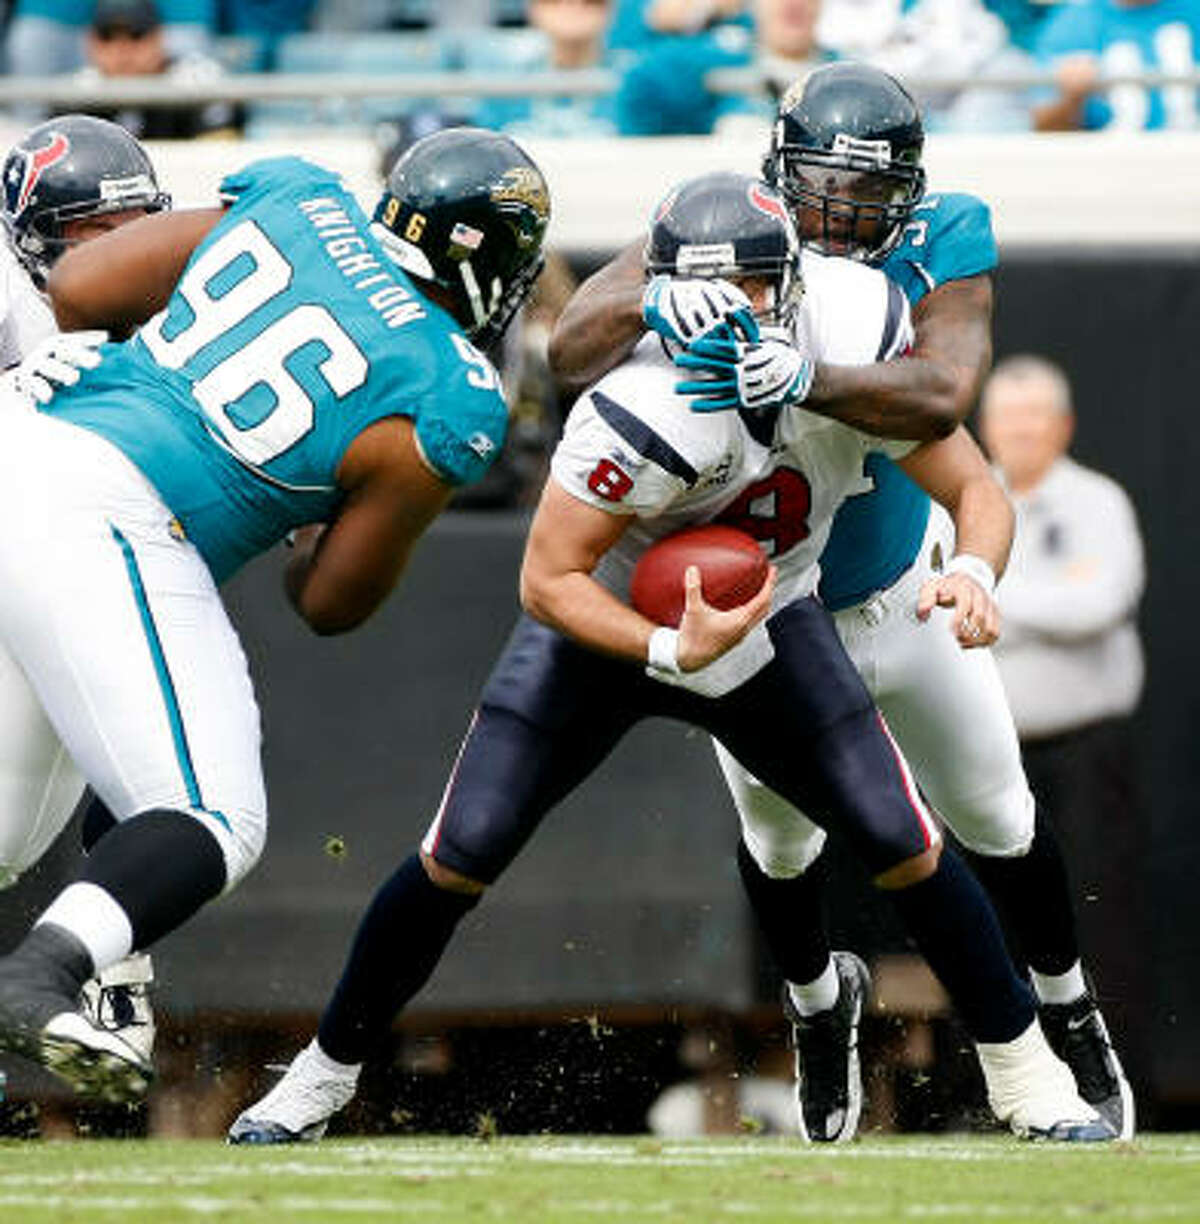 Texans quarterback Matt Schaub is sacked by Jaguars defensive end Derrick Harvey (91) in the first quarter. Schaub missed most of the first half with a shoulder injury.